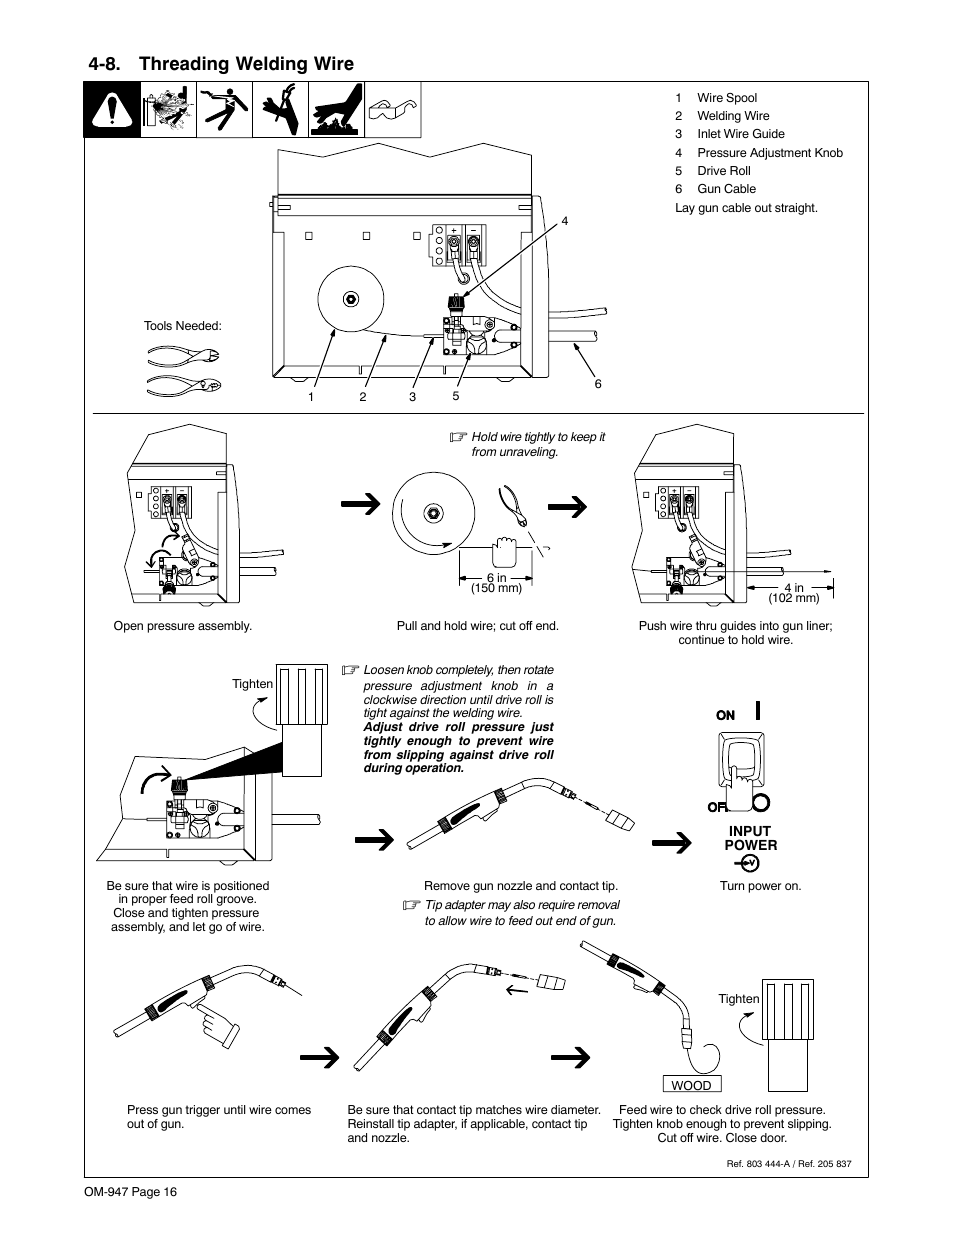 I Want To Wire The Following Diagram From Source Manual Guide